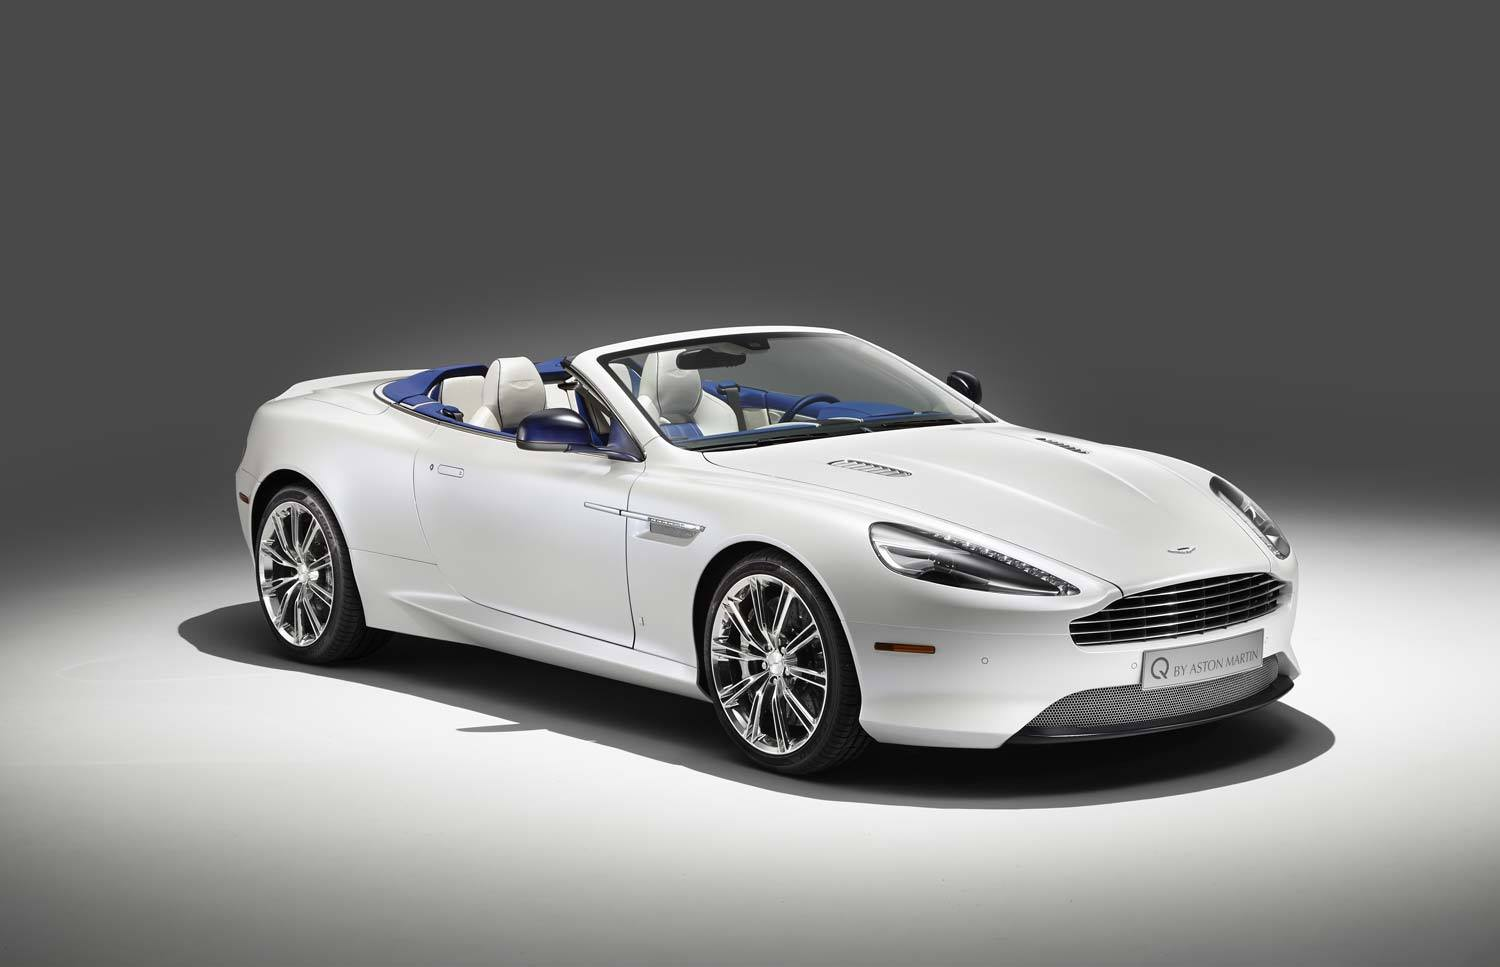 qaston martin db9 volante in morning frost - gtspirit